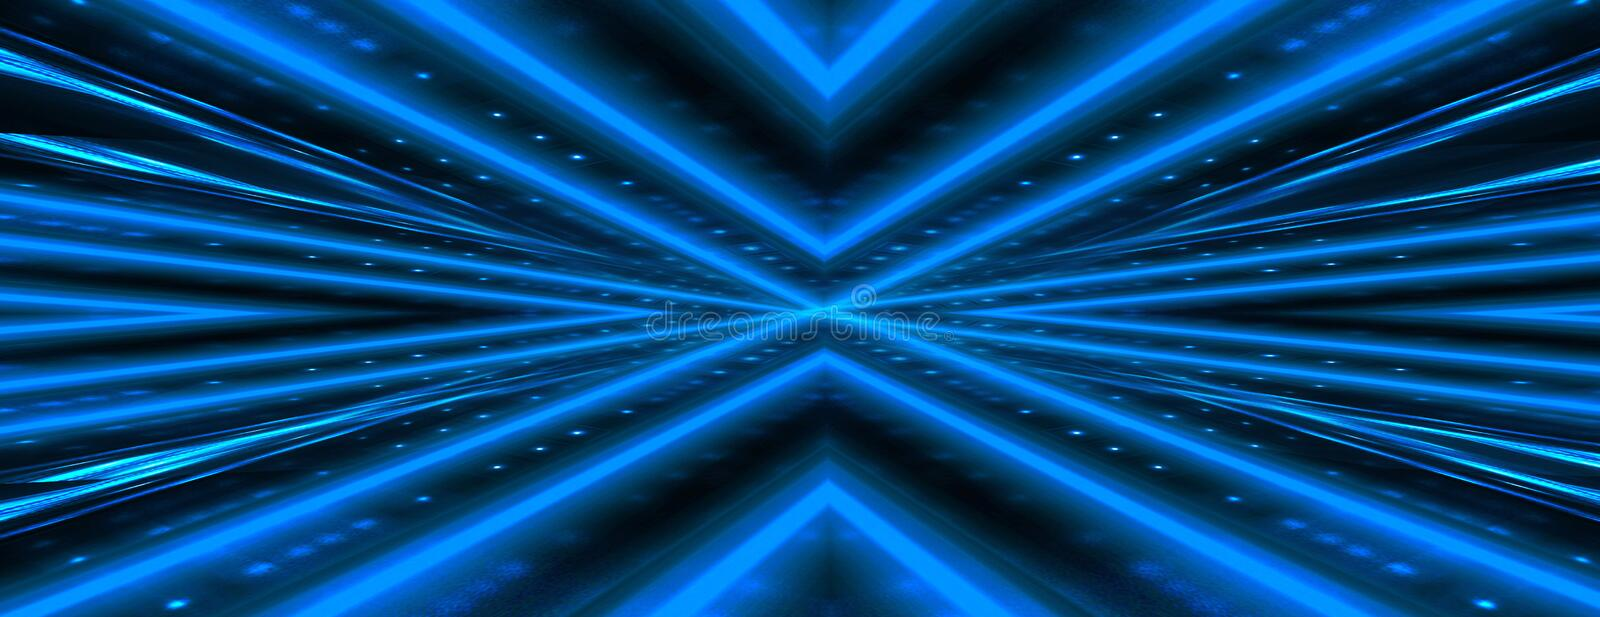 Abstract dark background with brick wall and neon light. Neon blue rays. Dark tunnel with neon blue light, abstract pyramid, light triangle stock images